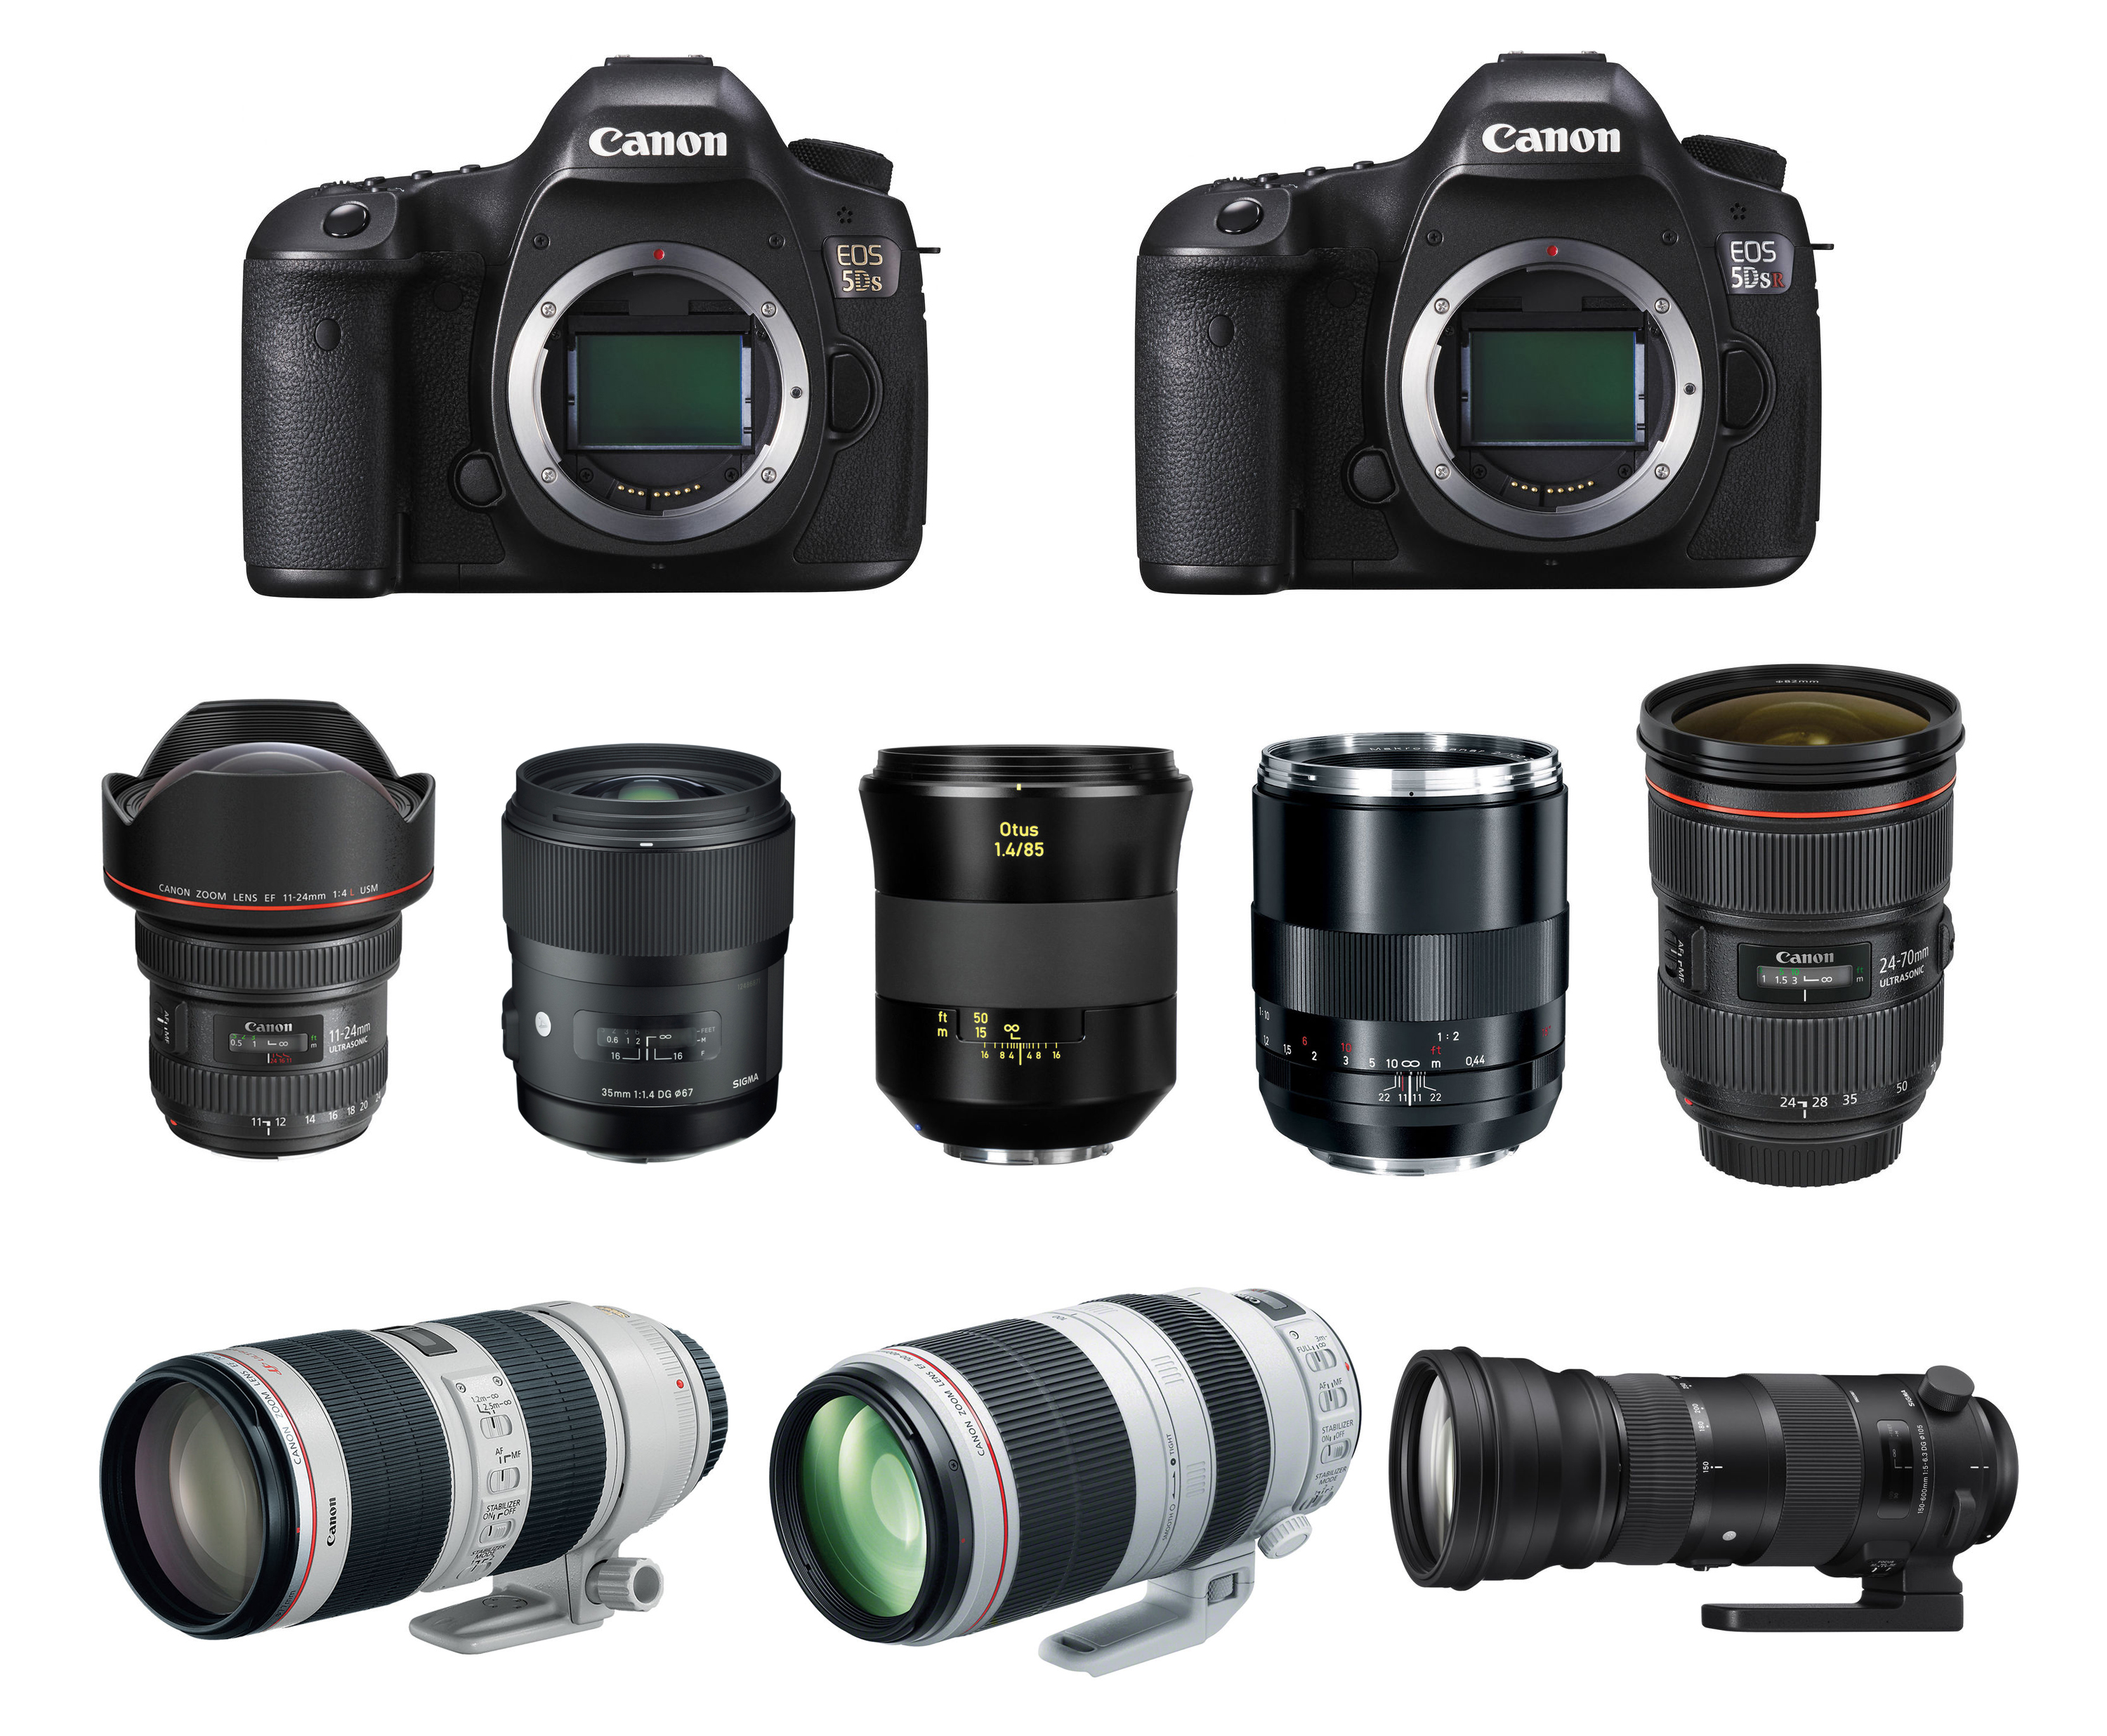 Camera Canon Dslr Camera Usa recommended lenses for canon eos 5ds r according to best 5ds